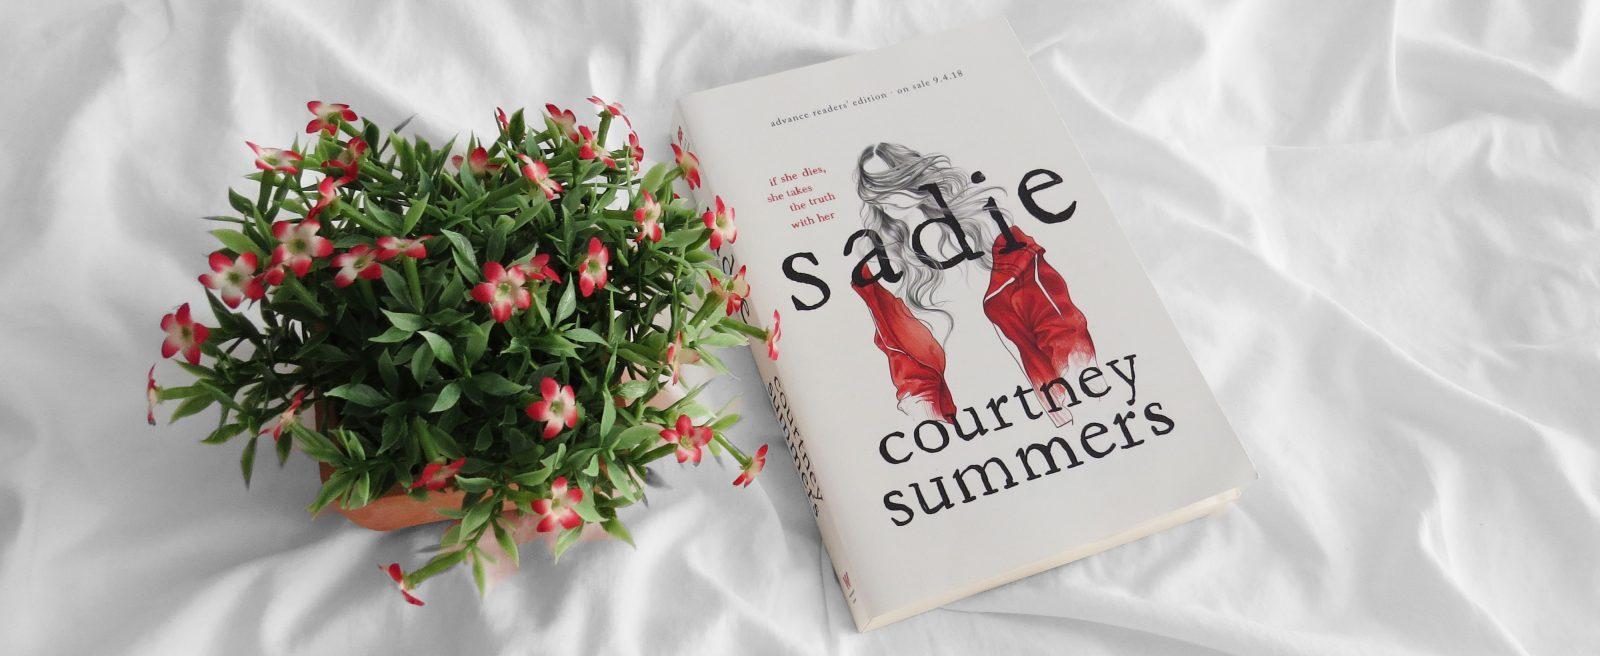 Blog Tour | Sadie by Courtney Summers Review + Q&A